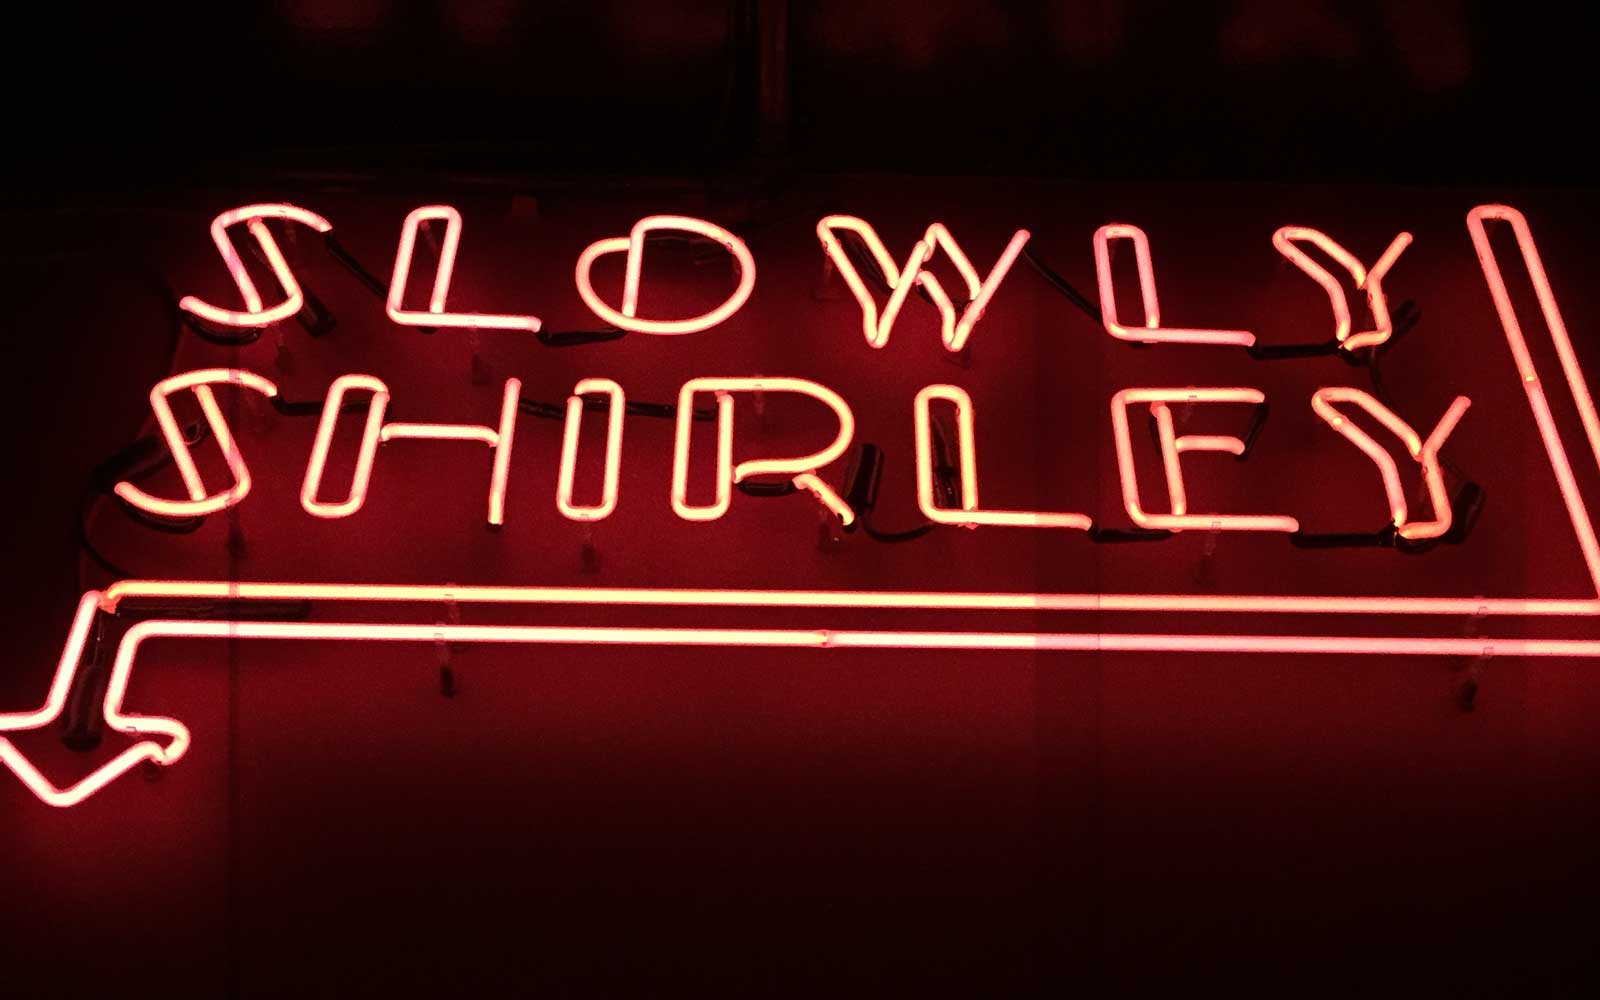 Slowly Shirley - New York City Speakeasy